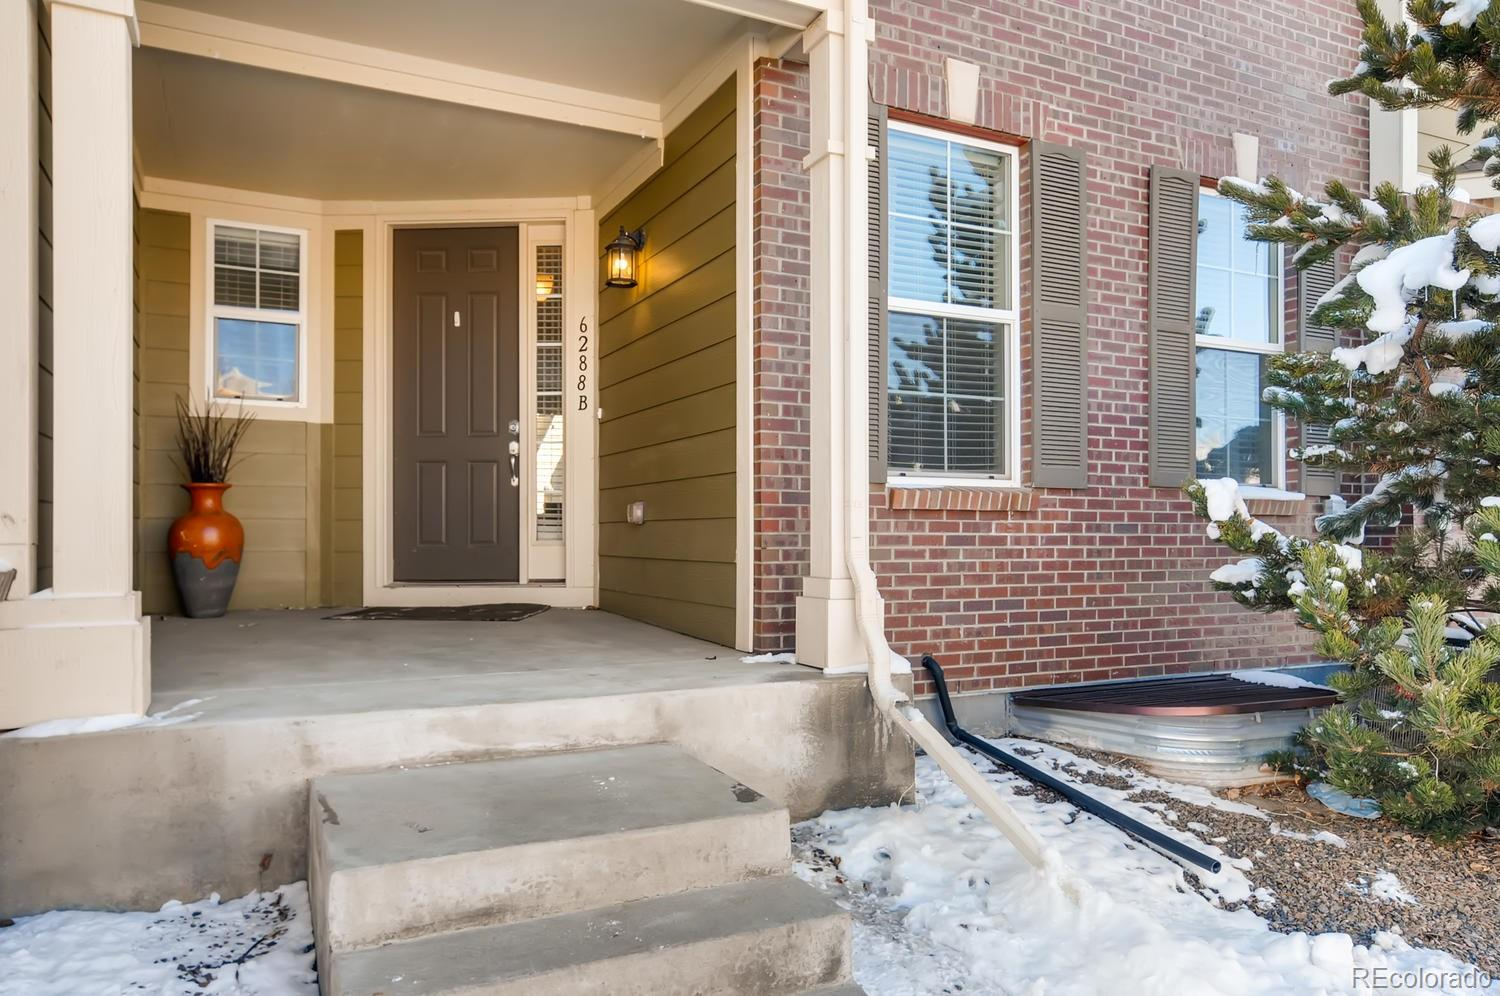 MLS# 7221066 - 33 - 6288 Orchard Court #B, Arvada, CO 80403